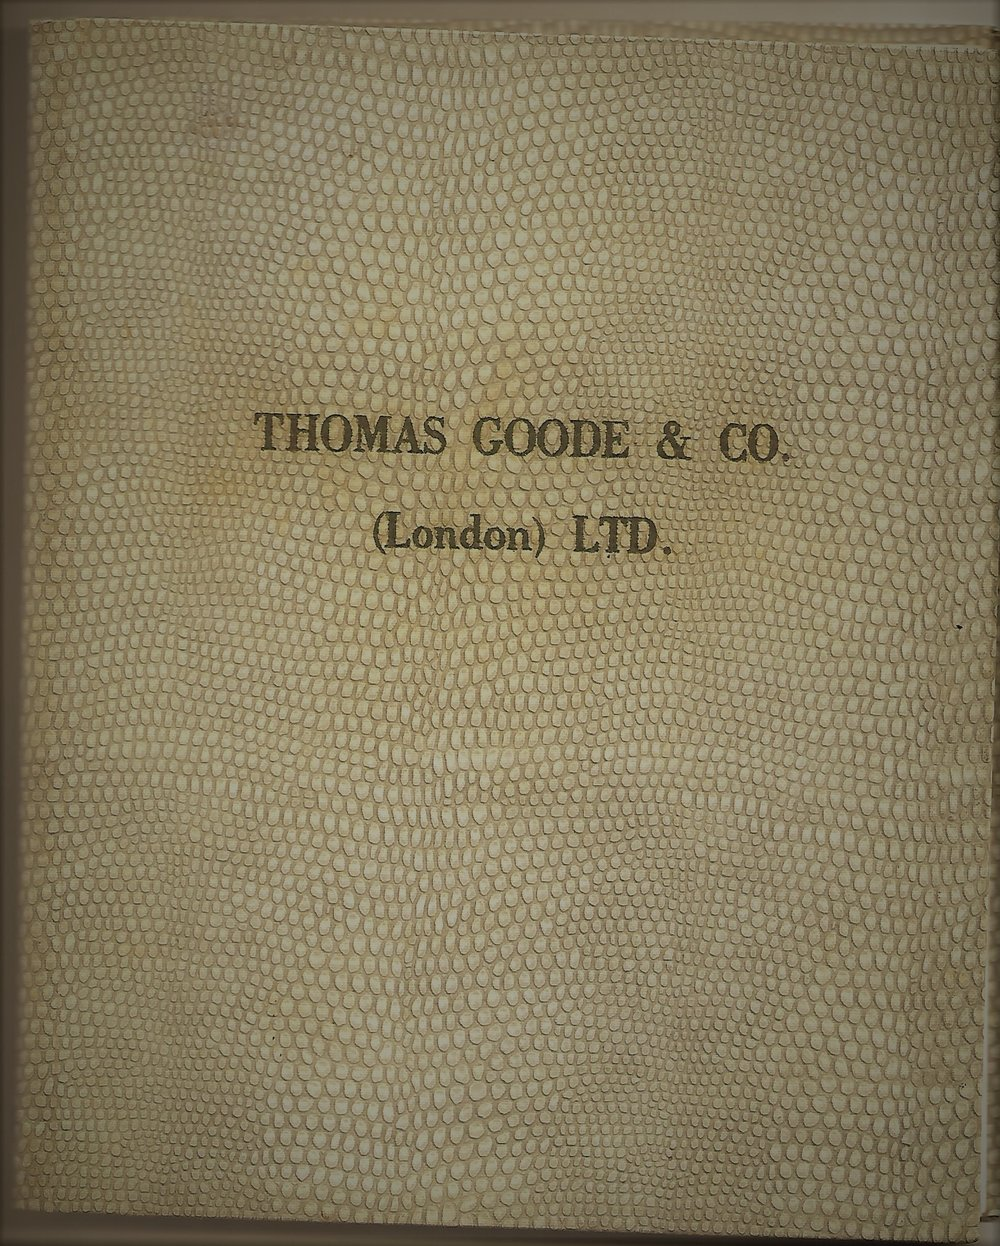 royal-crown-derby-thomas-goode-&-co-catalogue-outer-cover